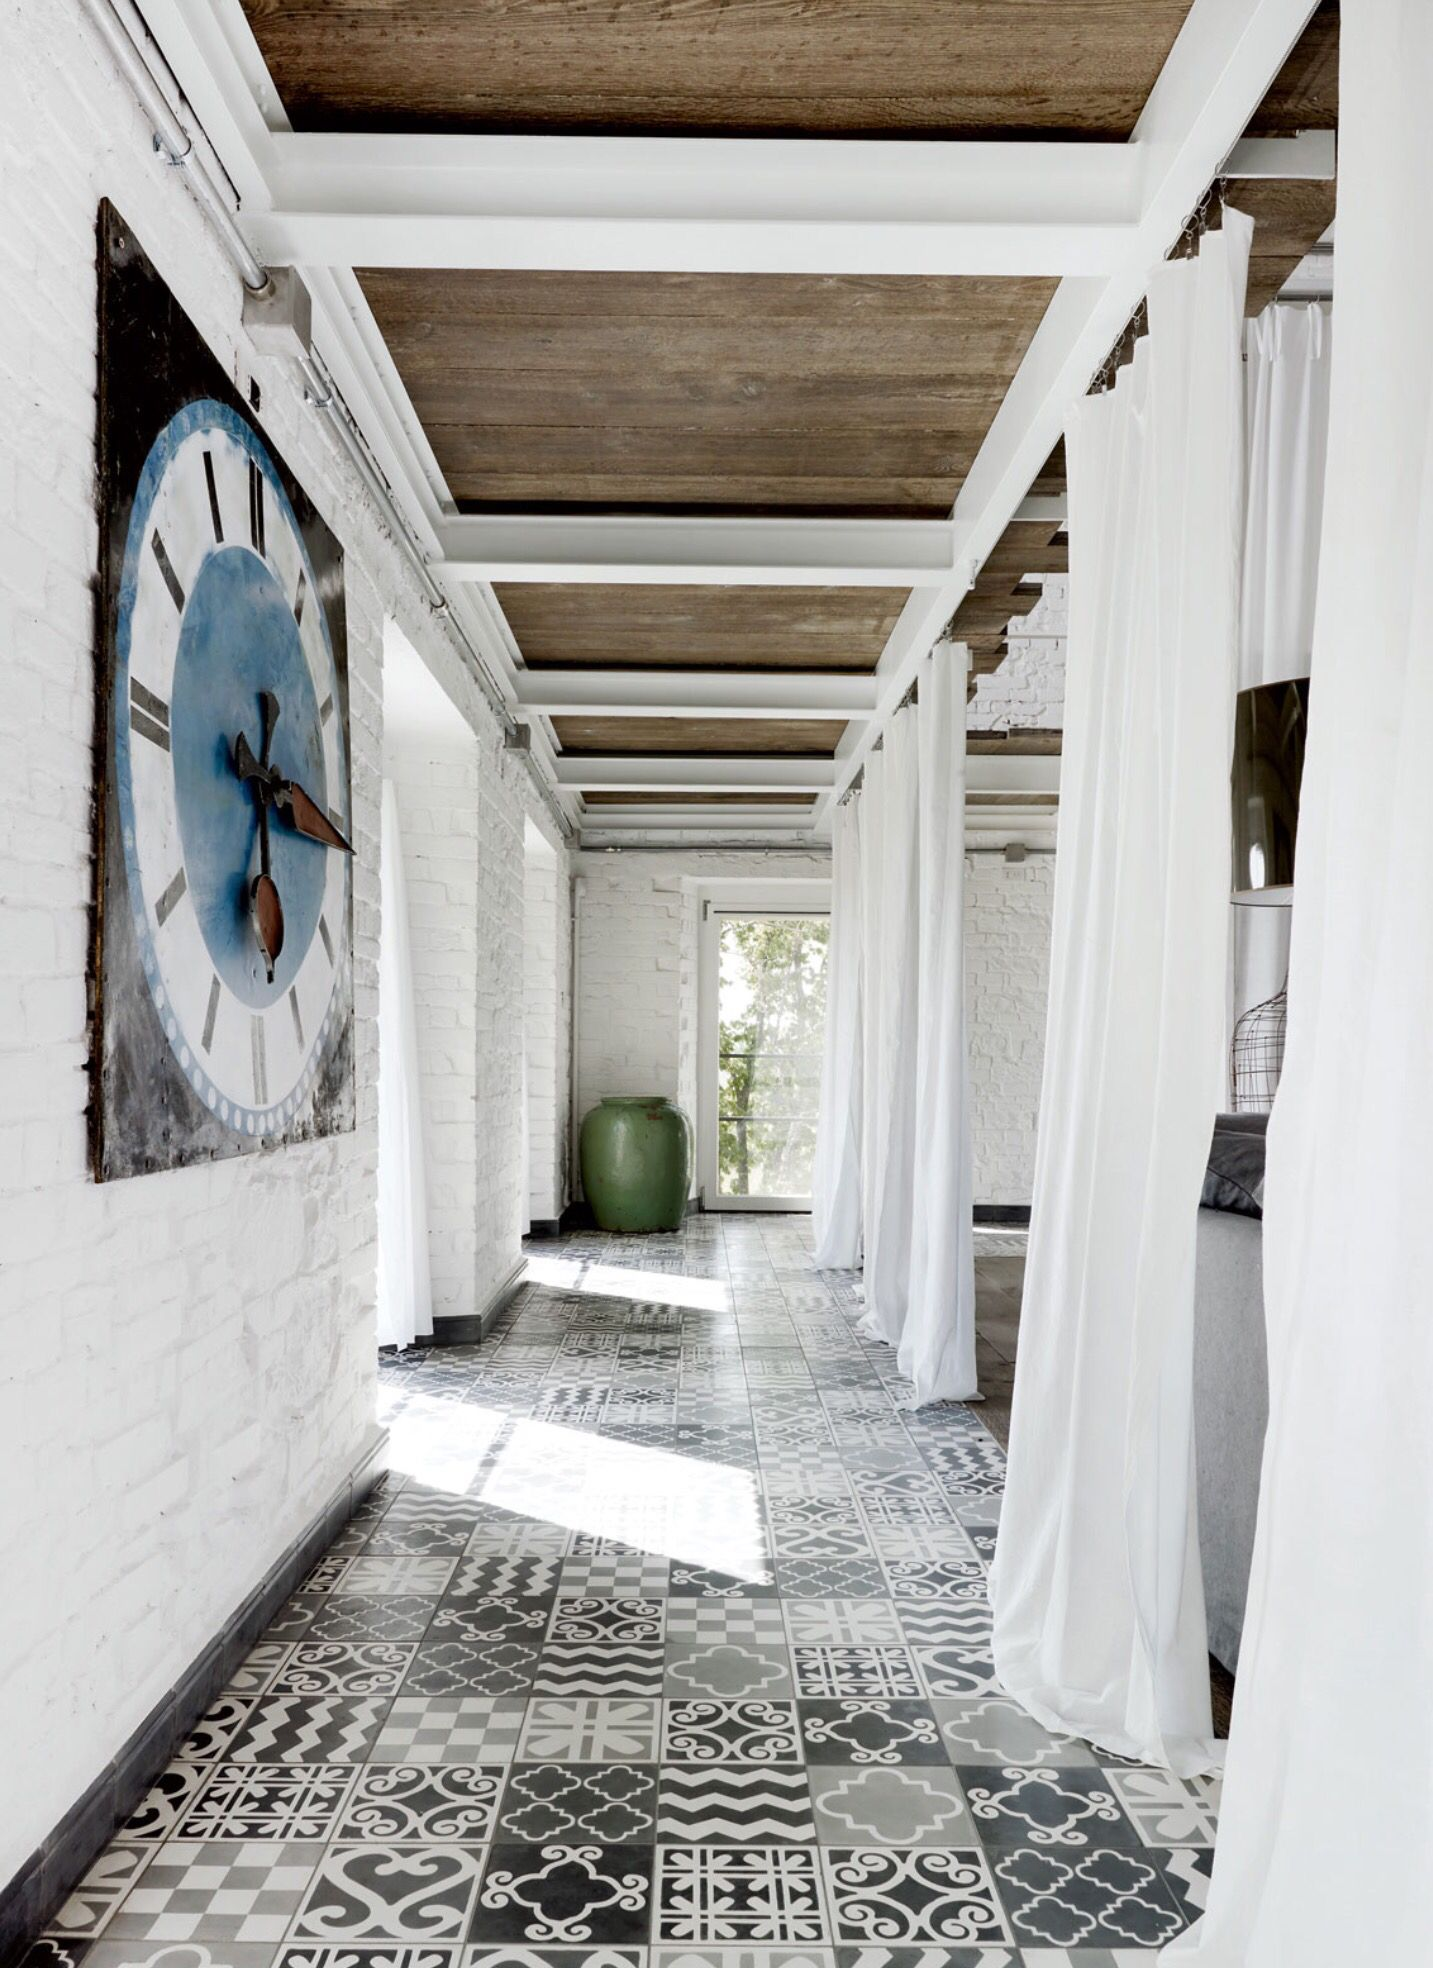 Paola navone umbrian home kateyoungdesigntumblr inside patchwork cement tiles a carpet of custom tile created by paola navone punctuates a corridor on the first floor of a italian farmhouse she renovated doublecrazyfo Images